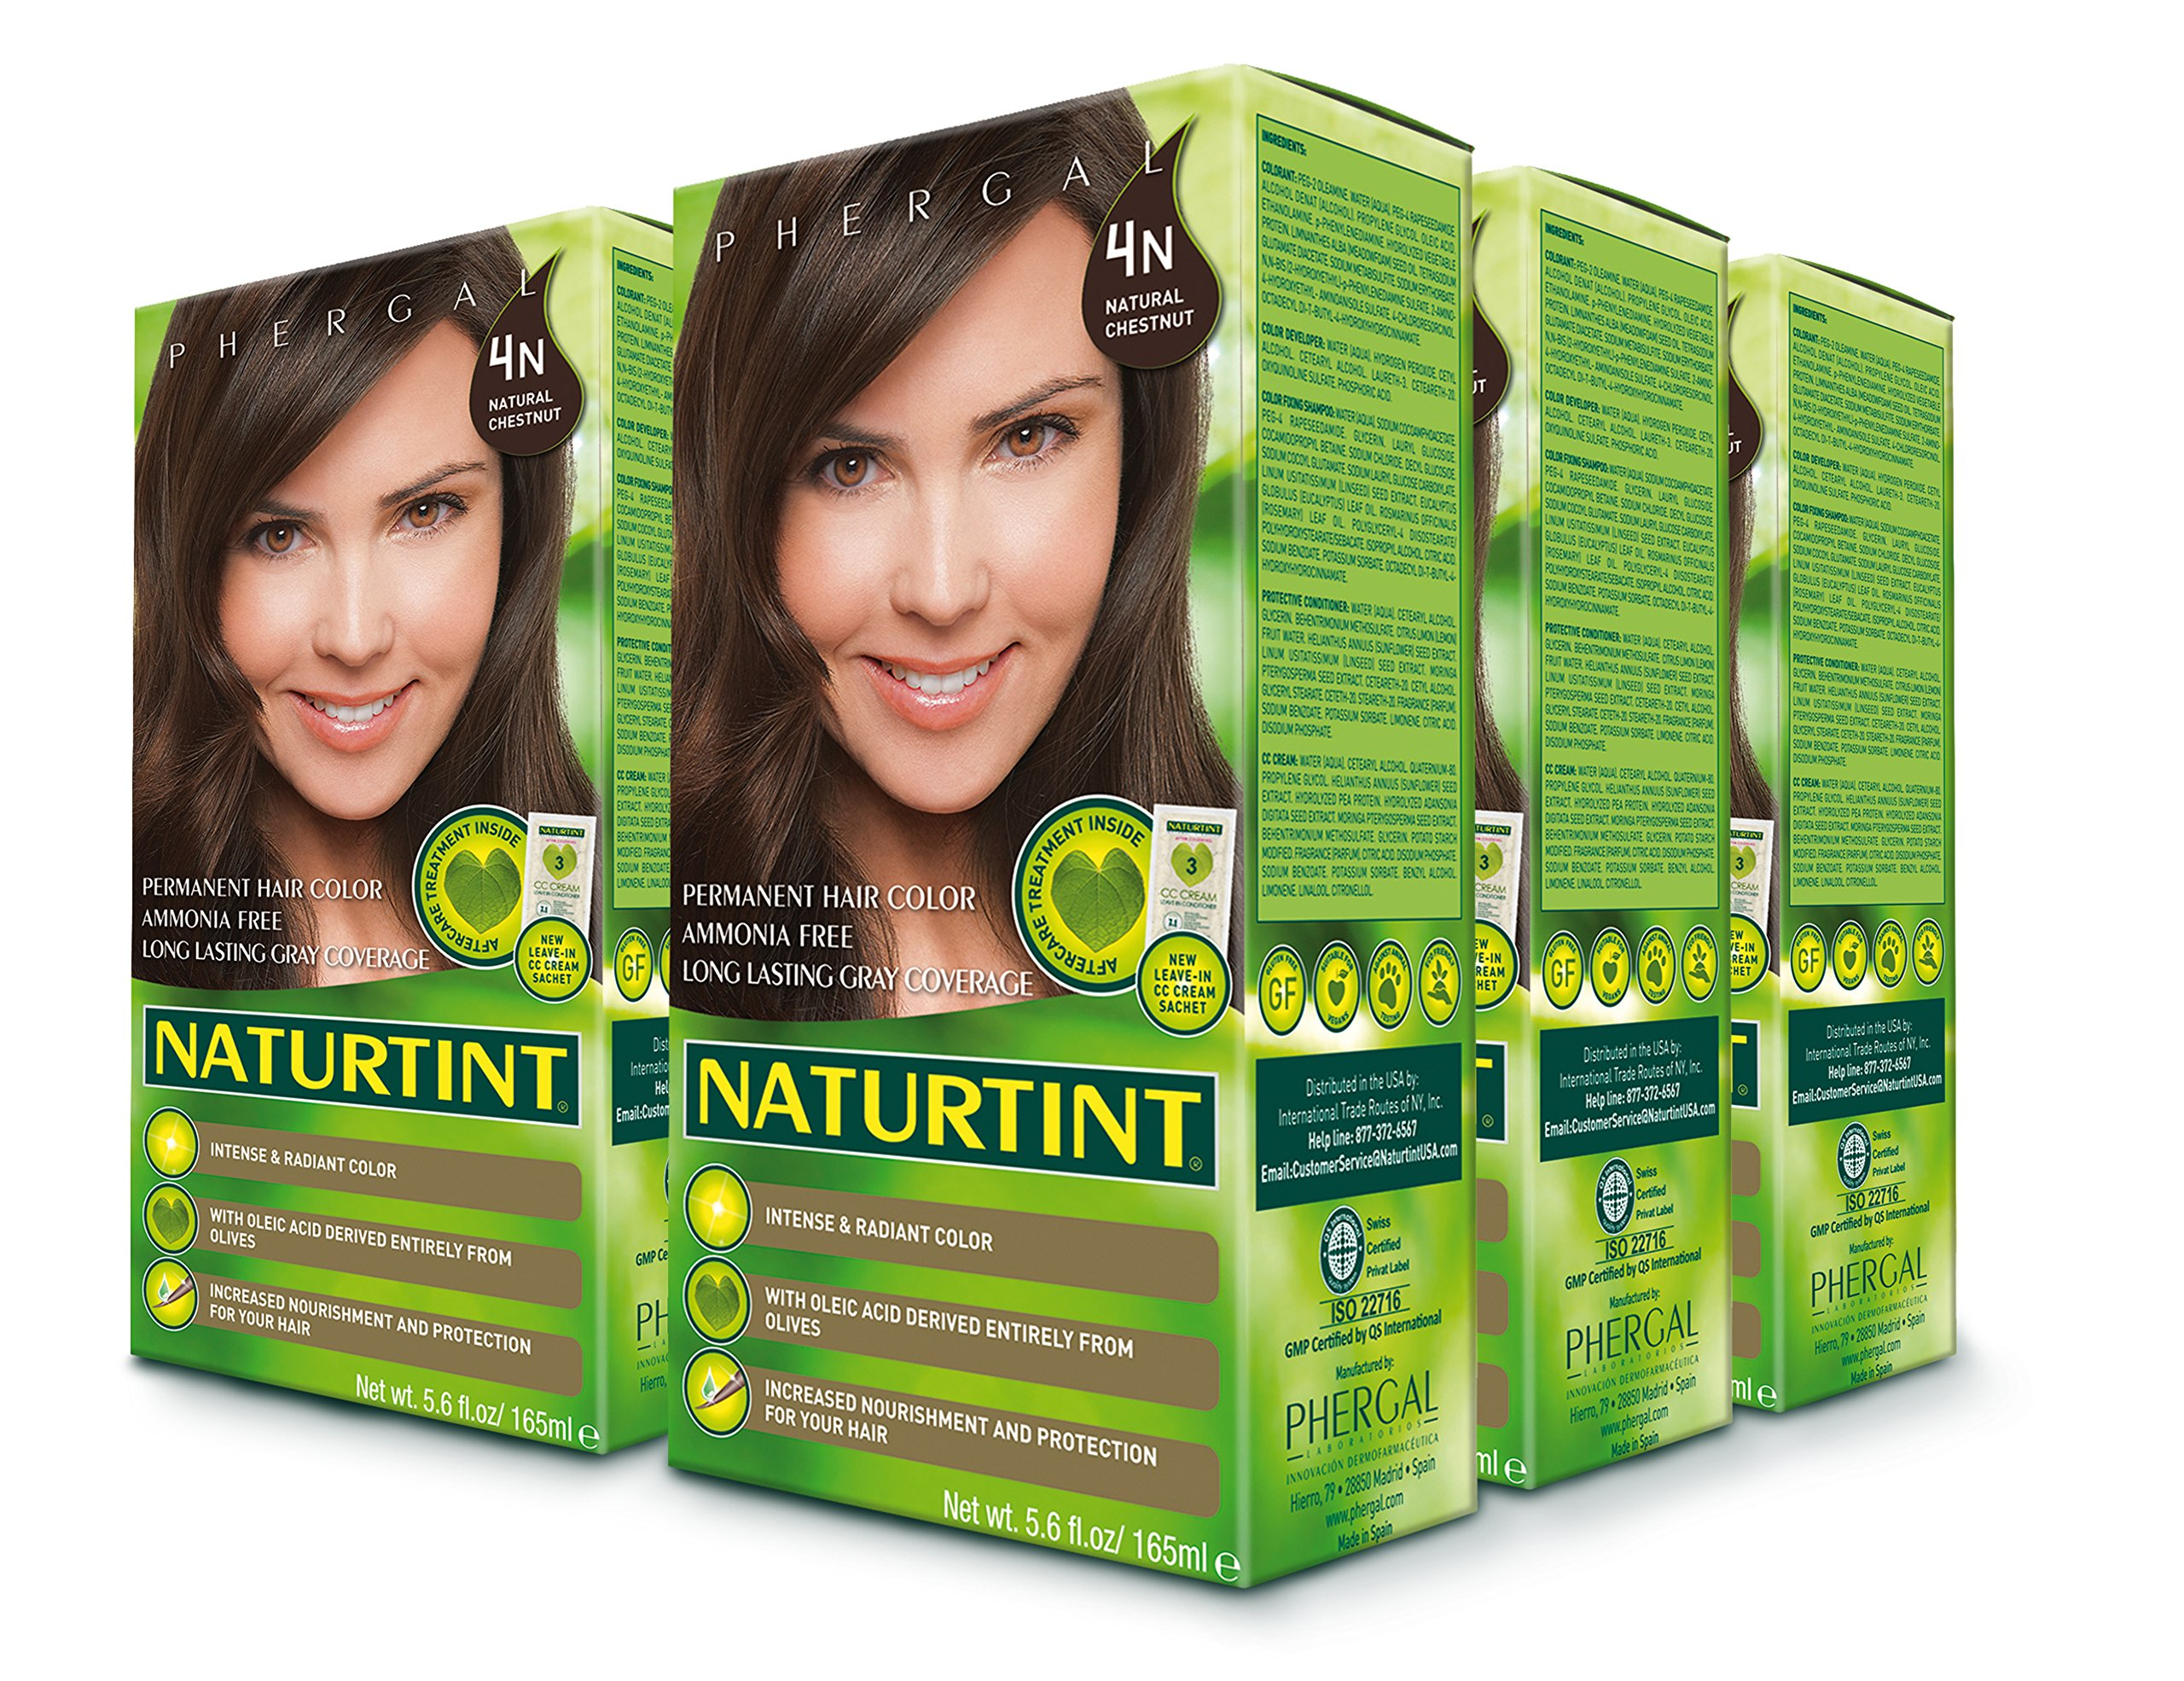 Naturtint Permanent Hair Color - 4N Natural Chestnut, 5.28 fl oz (6-pack) by Naturtint